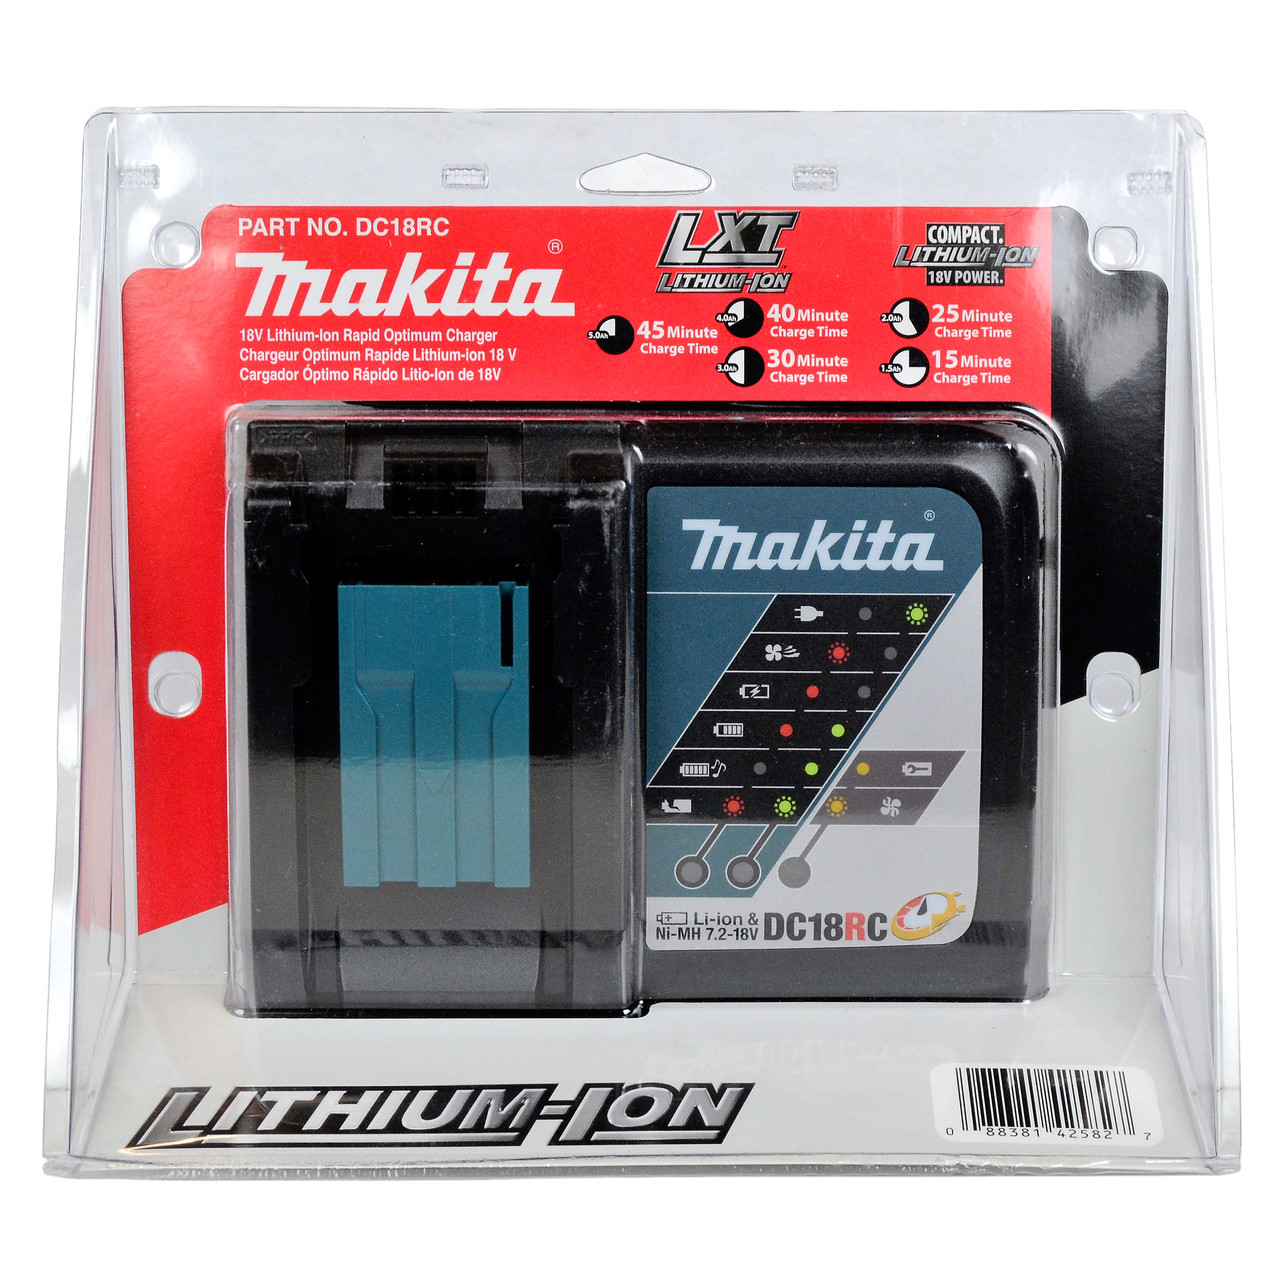 Makita Dc18rc 72 18 Volt Li Ion Battery Charger In Retail Packaging Lithium 18v